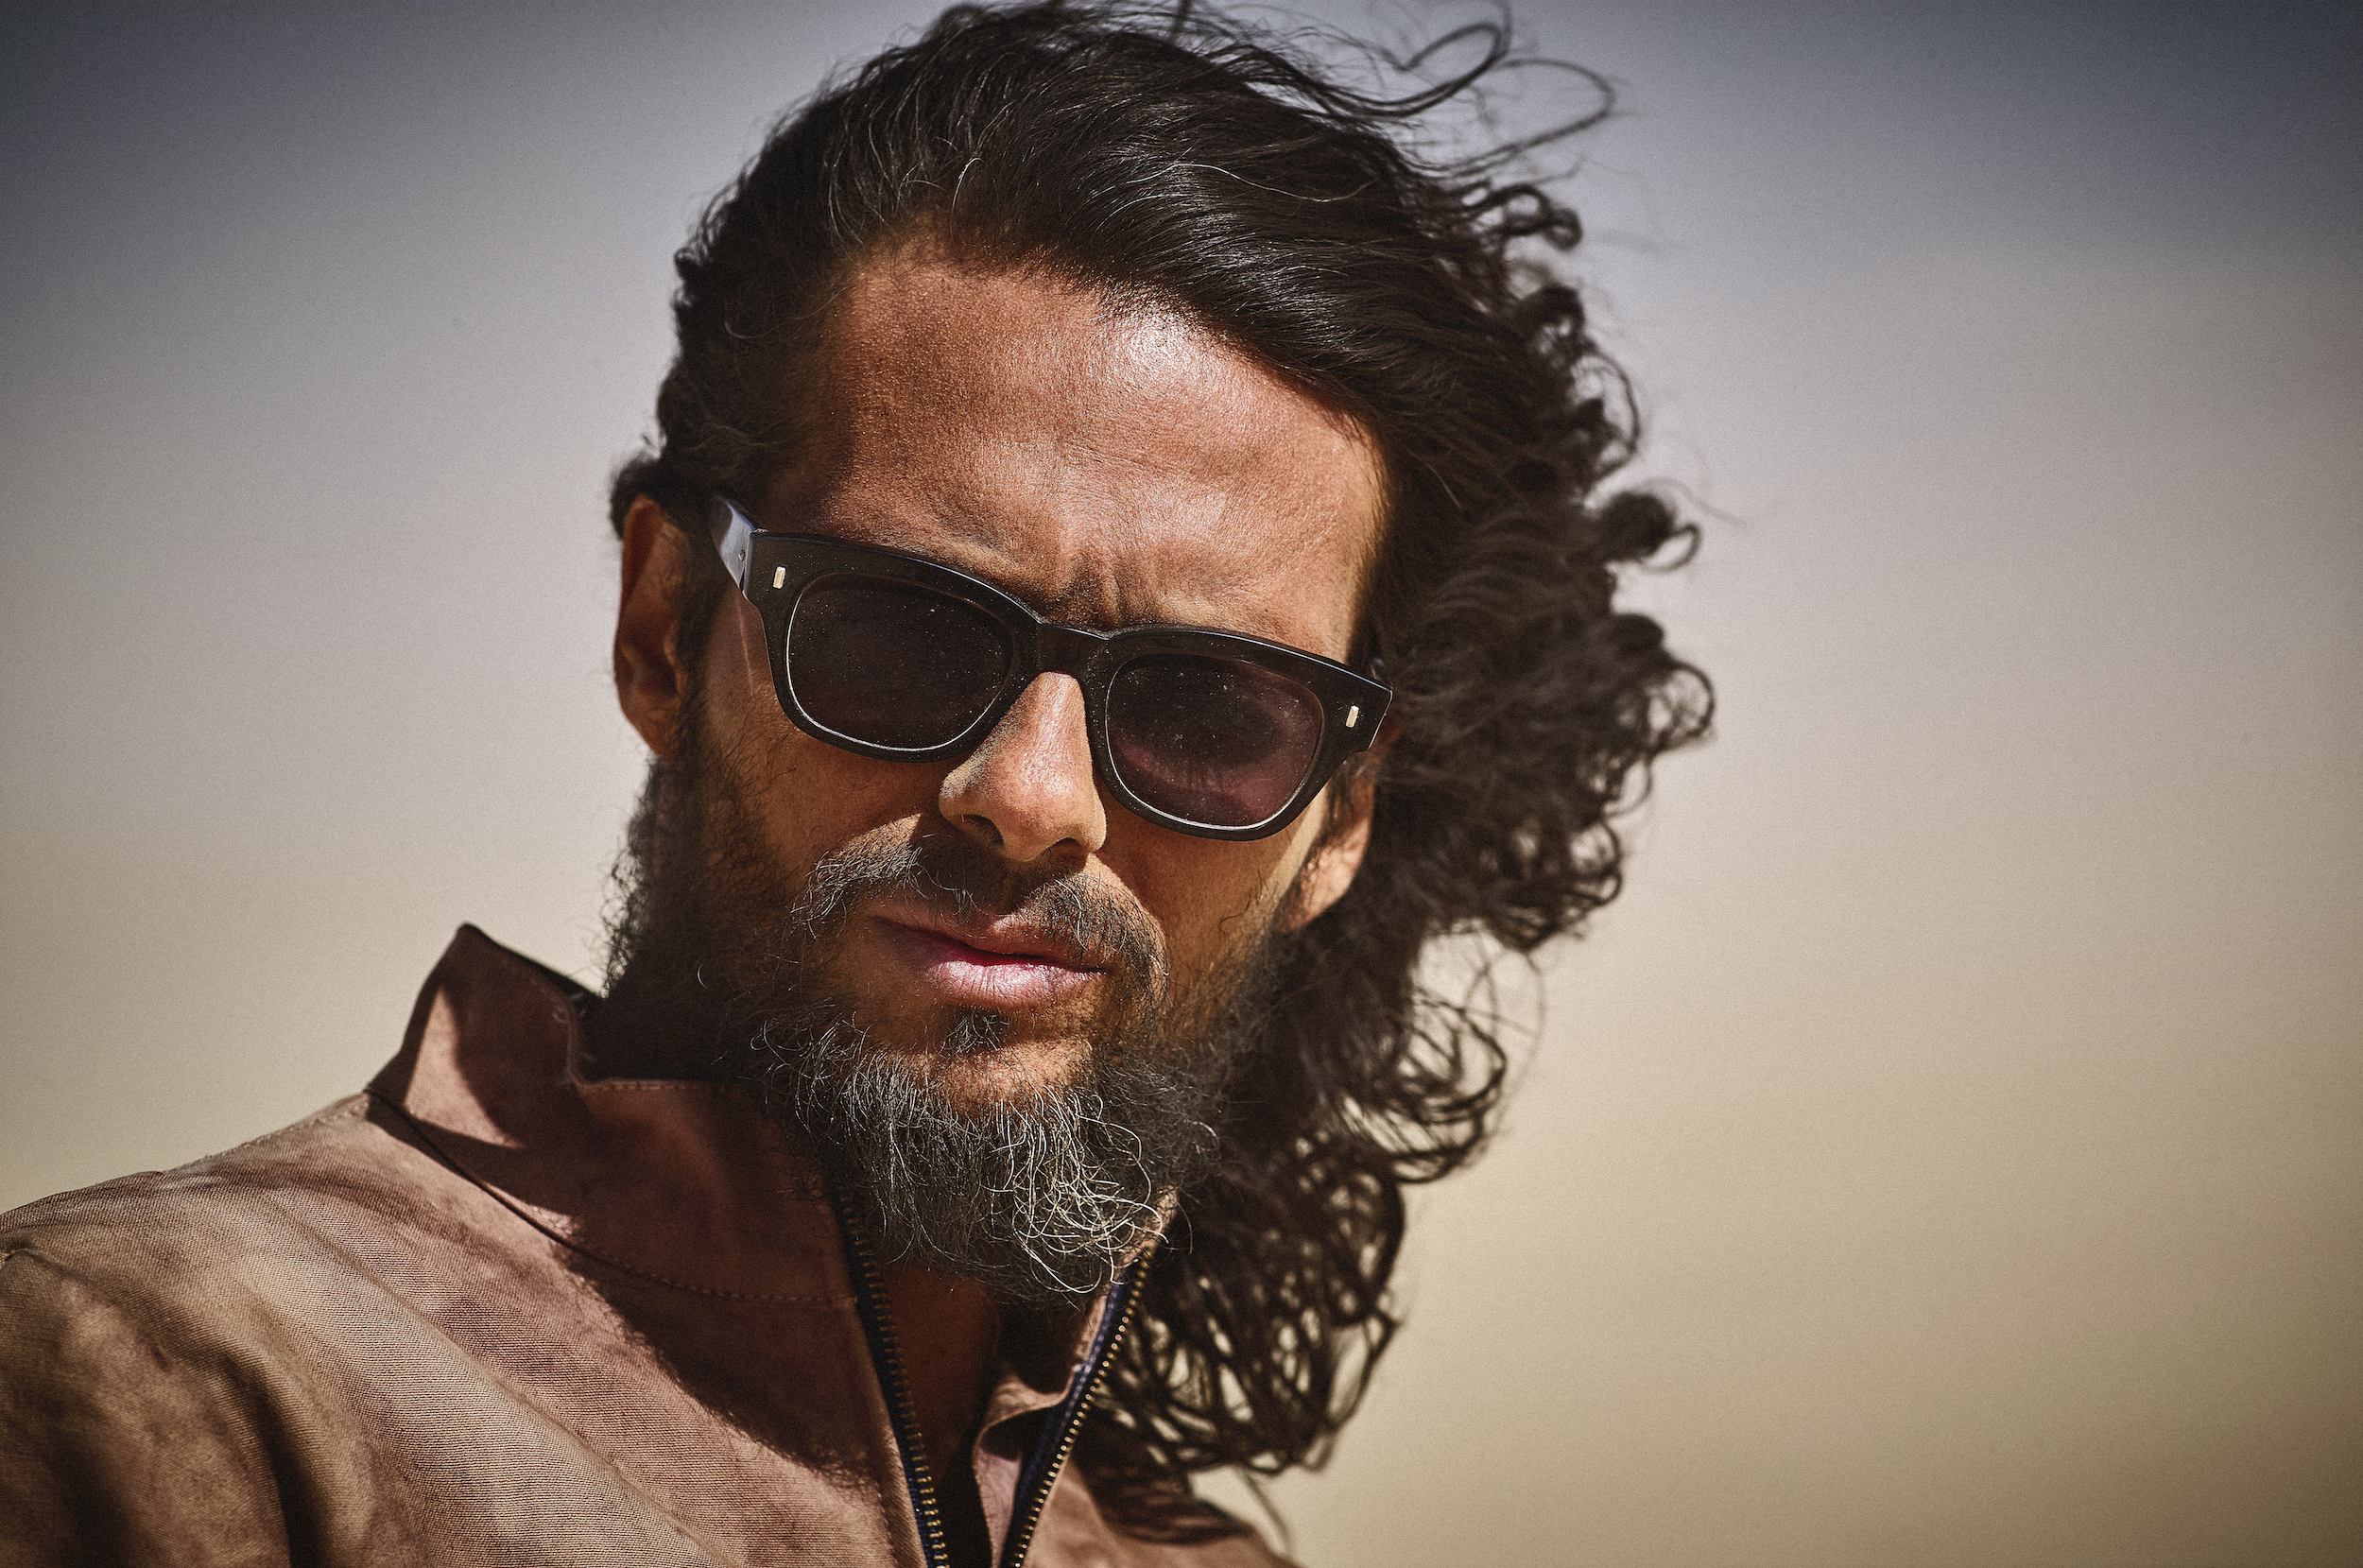 Musician Draco Rosa on creativity as a path to resurrection -